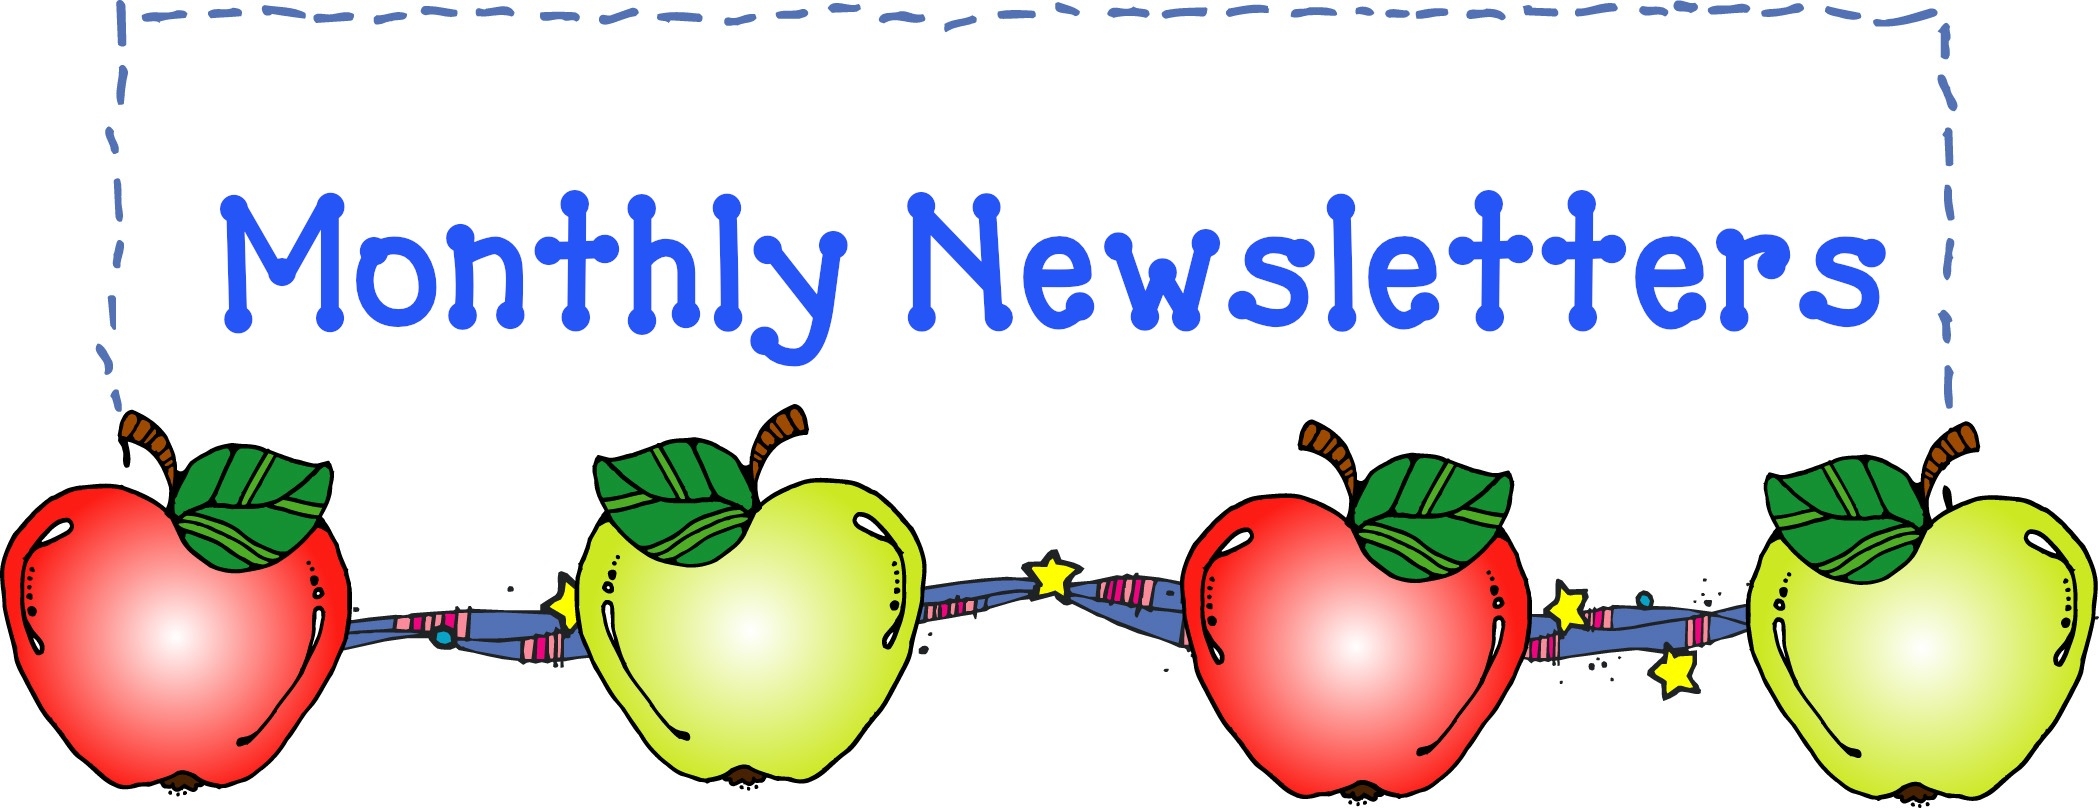 Newsletter clipart monthly newsletter. Free cliparts download clip